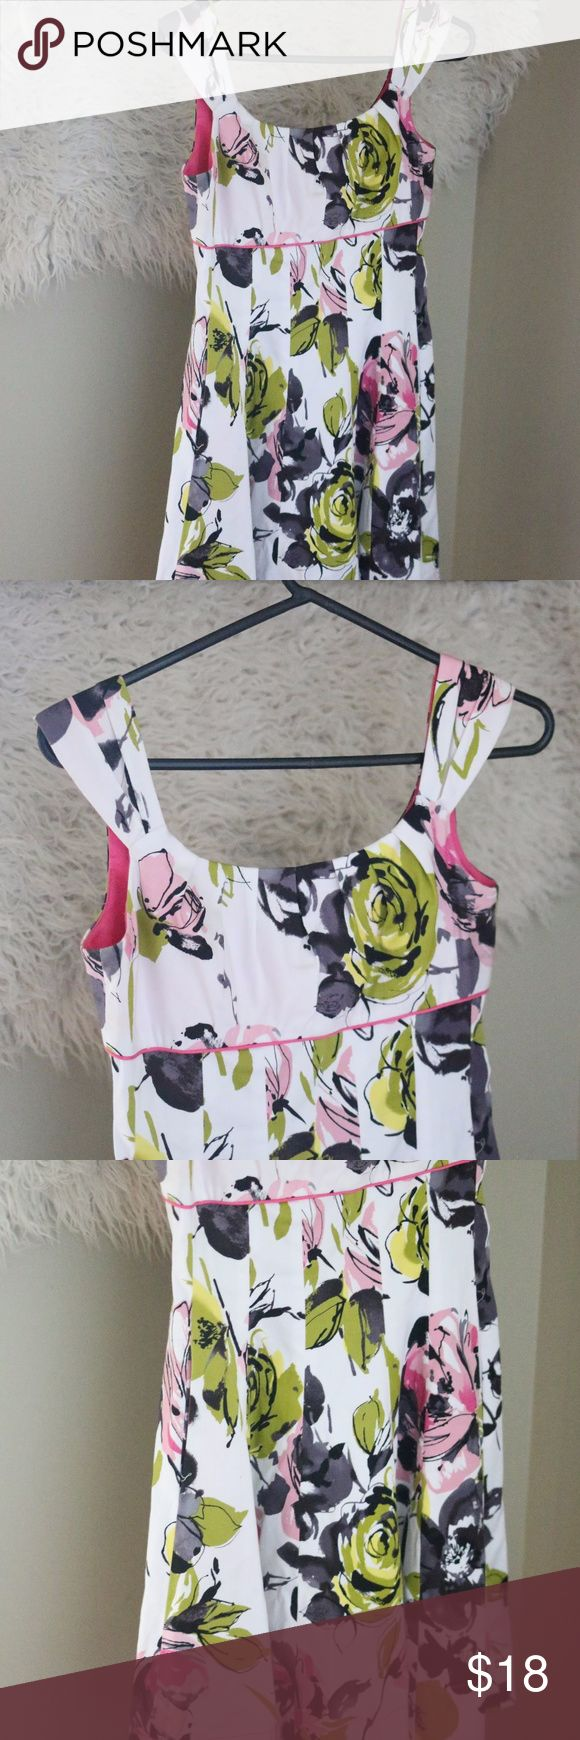 Maggy London Empire Waist Dress Floral Sleeveless Gorgeous Maggy London Women's Dress.  Size 6p (petite).  Empire waist with pleated bottom.  White with a green and pink floral pattern.  Sleeveless.  97% cotton, 3% spandex.  Dry clean.  In good, preowned condition with no flaws noted.  No trades, offers welcome. Maggie London Dresses